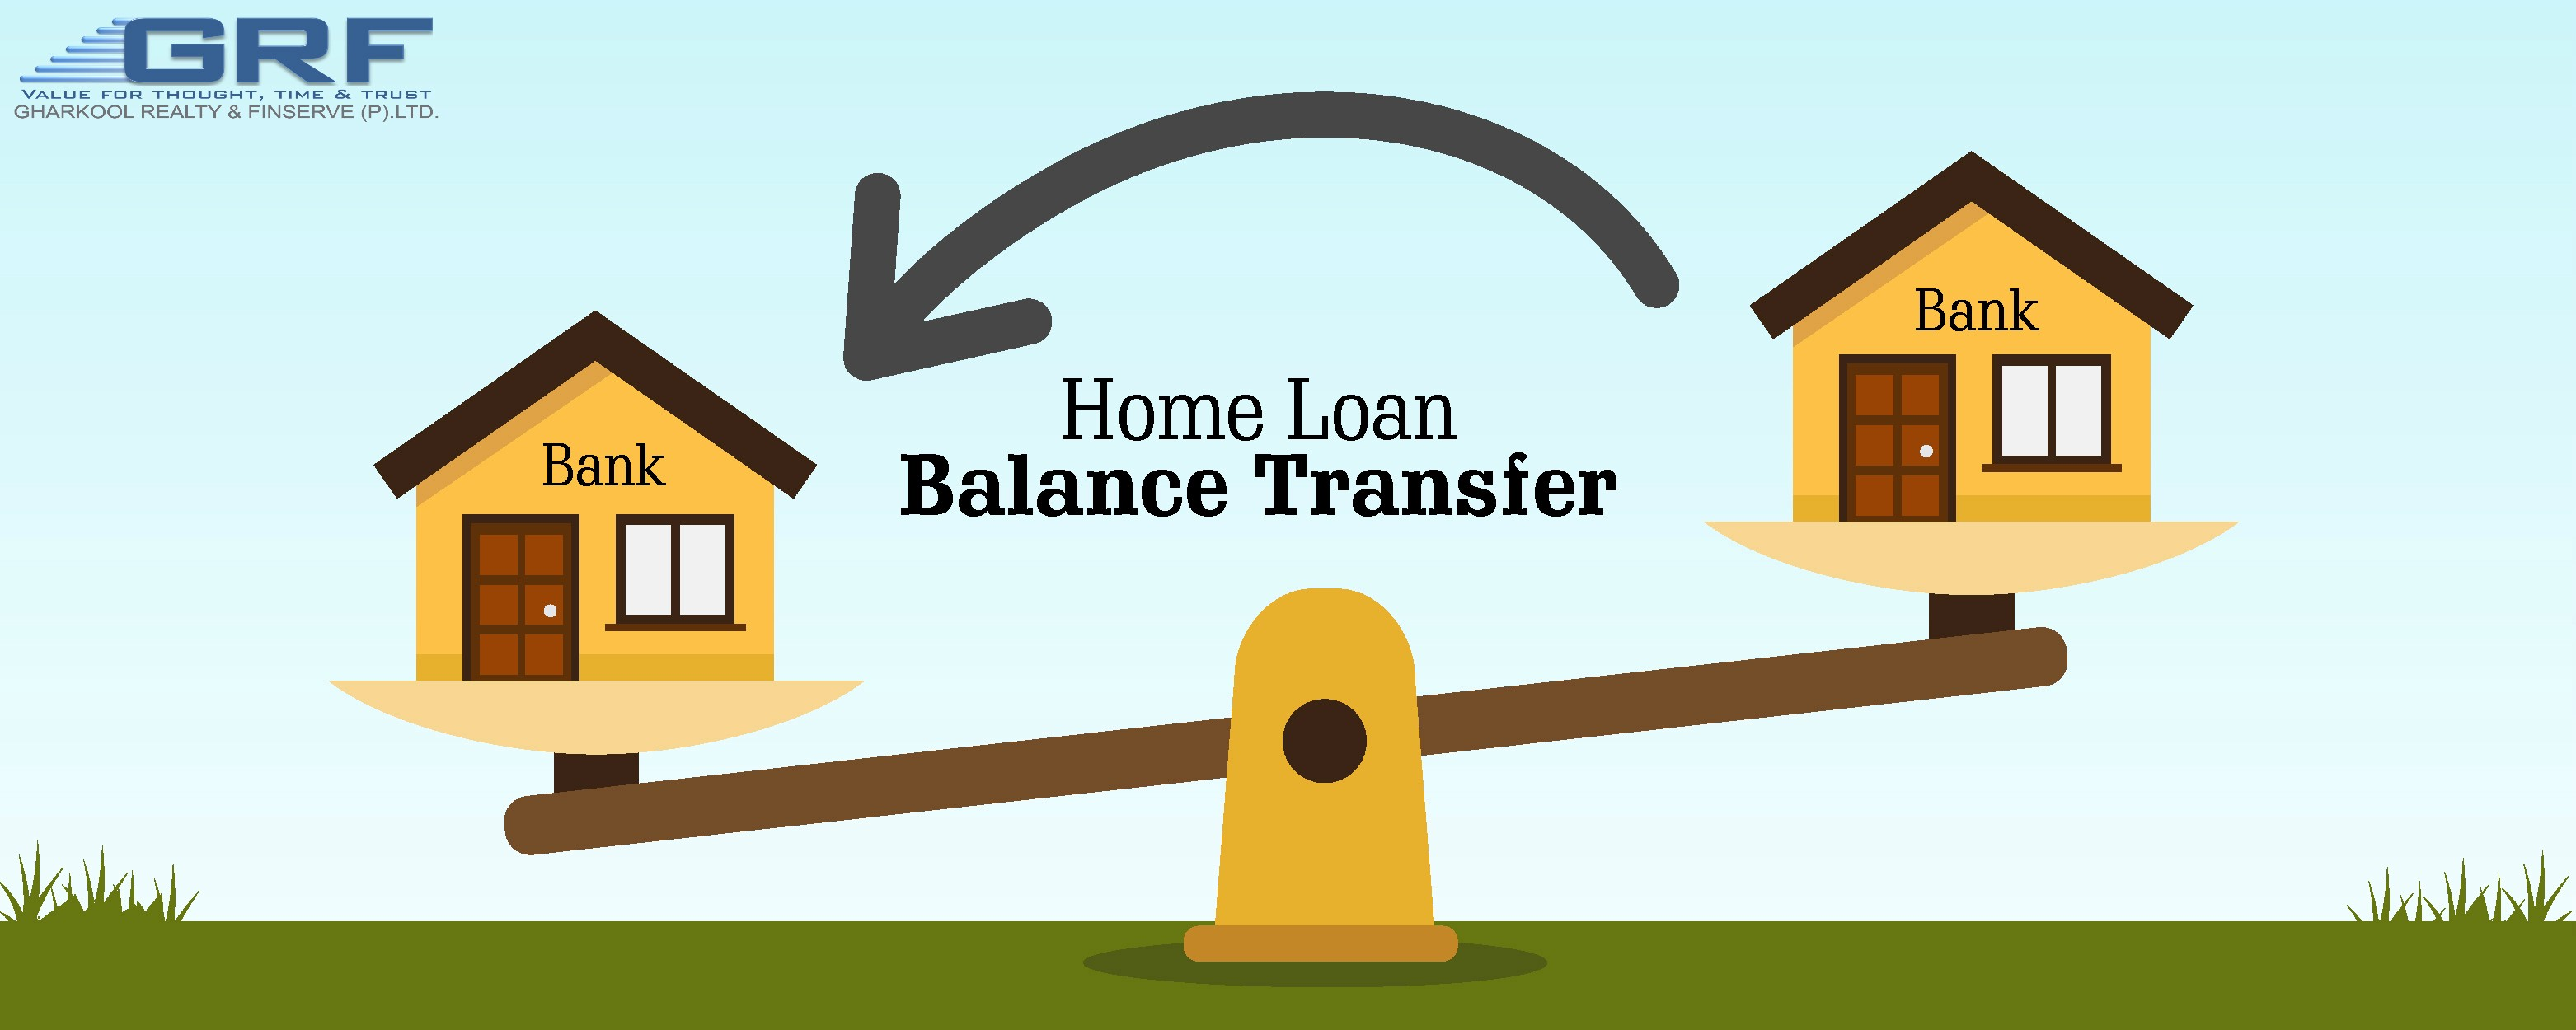 Home Loan Balance Transfer Can Fund You